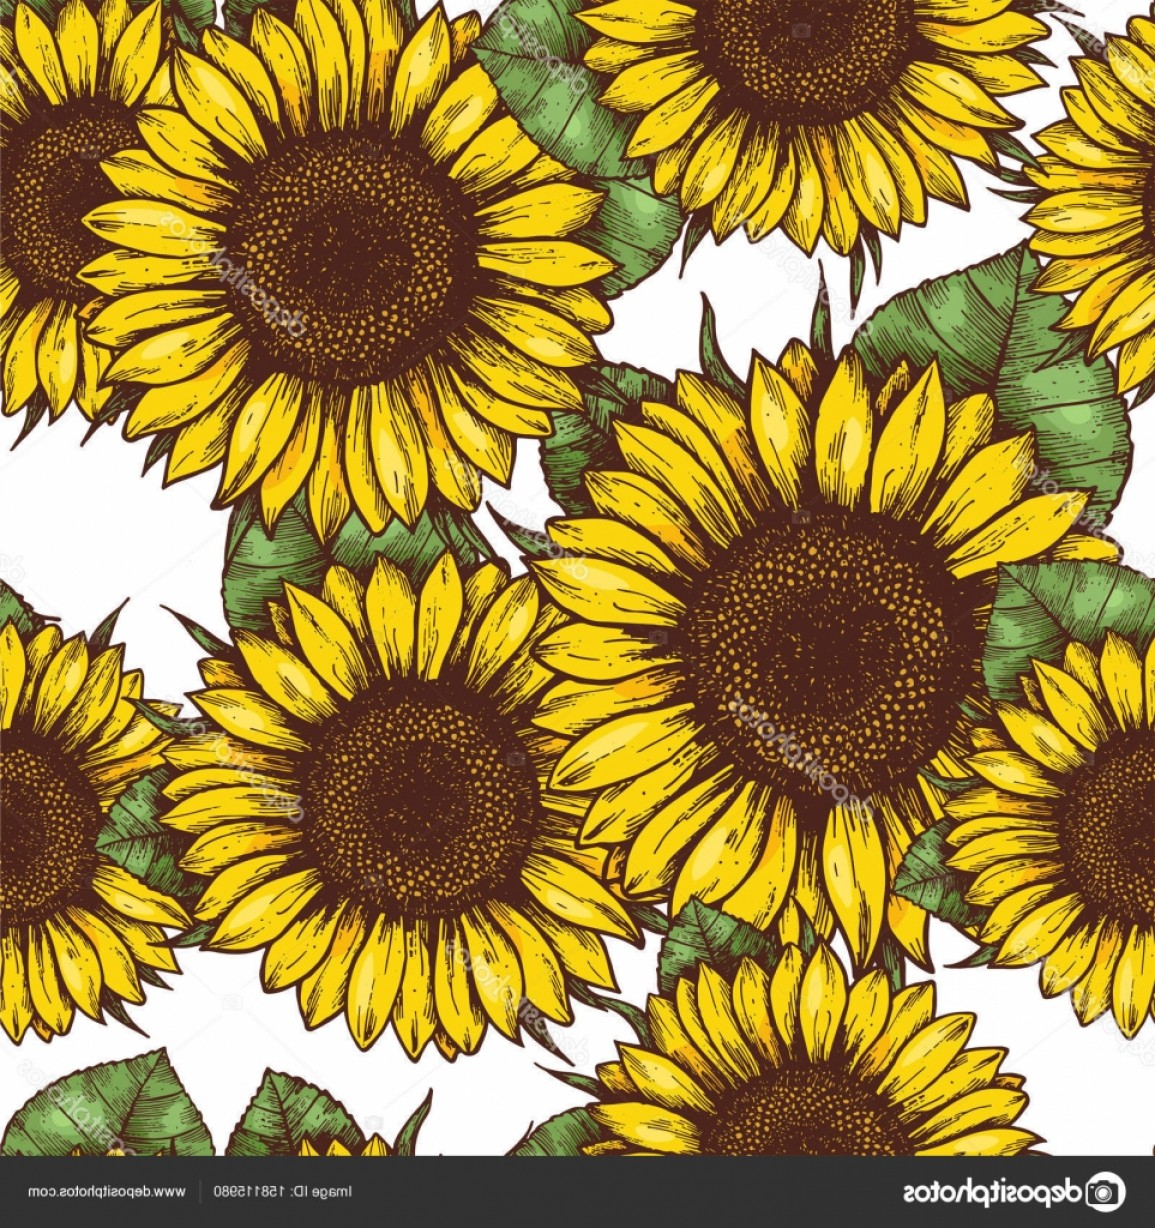 Sunflower Vector Pattern: Stock Illustration Sunflower Seamless Pattern Sunflower Fabric